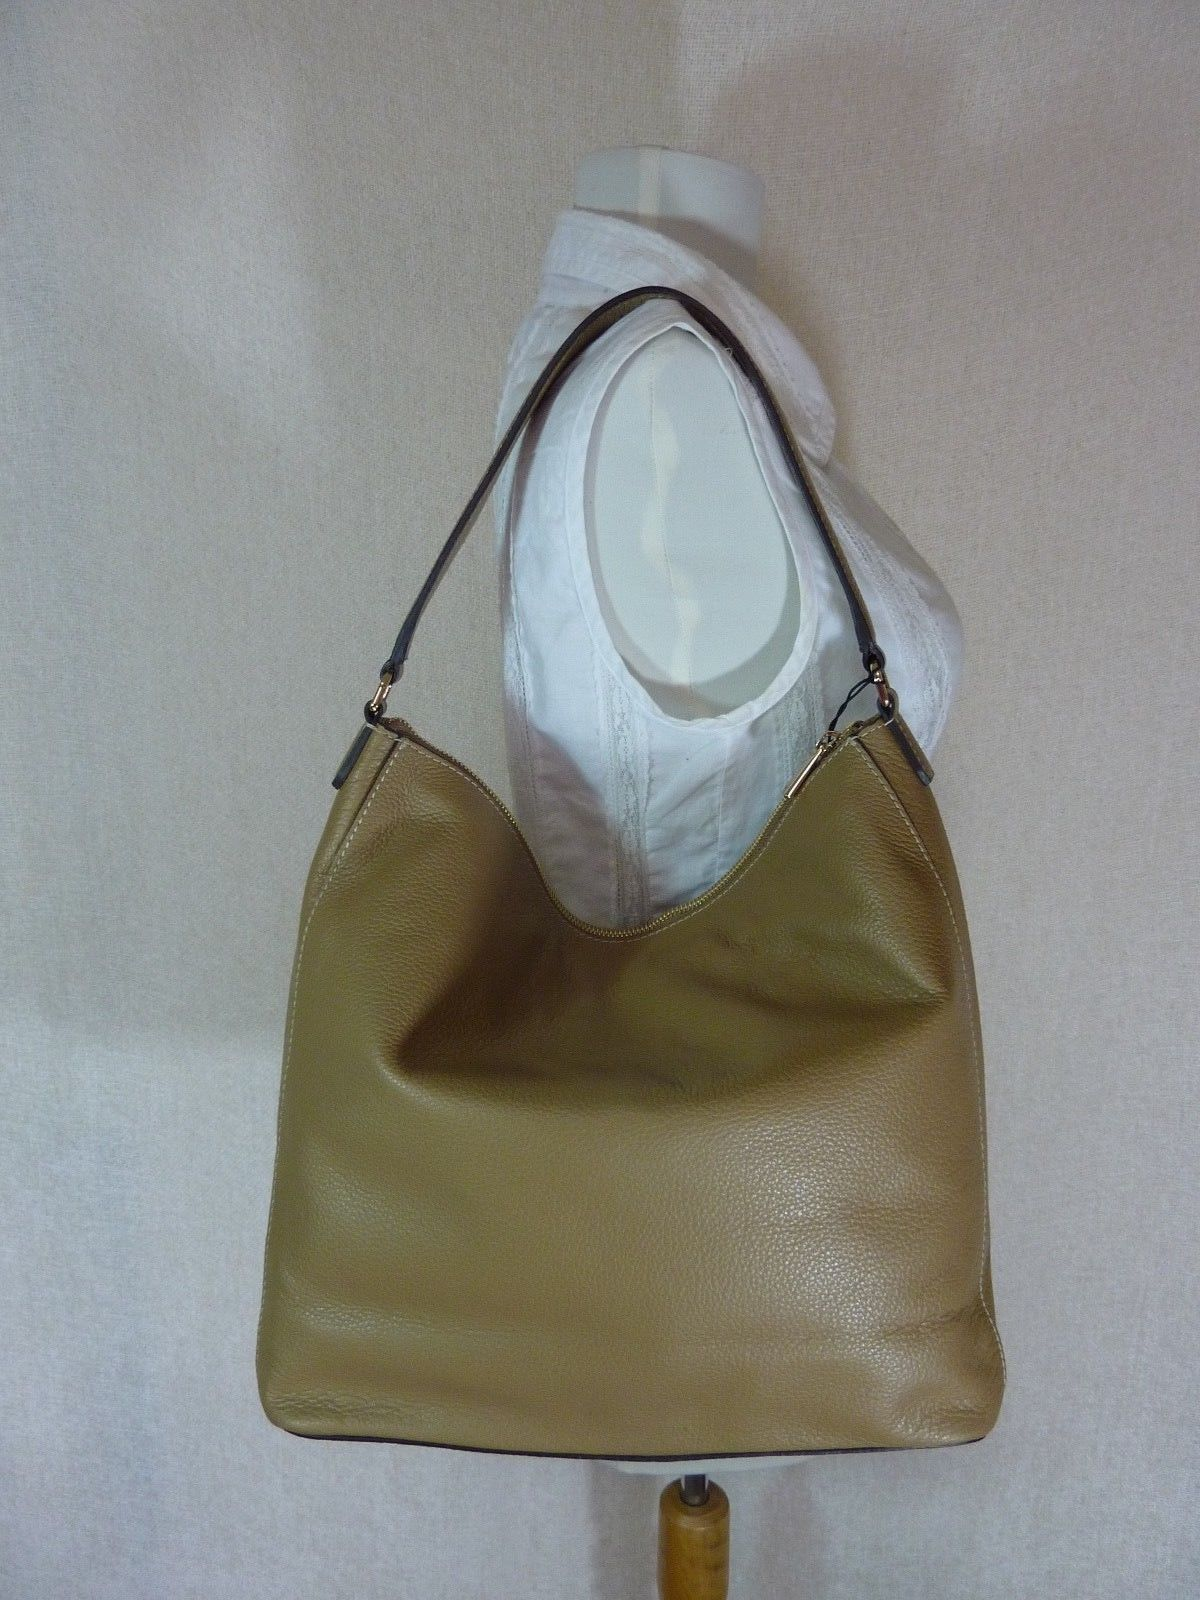 NWT Furla Cappuccino Pebbled Leather Jo Vertical Tote Bag image 4